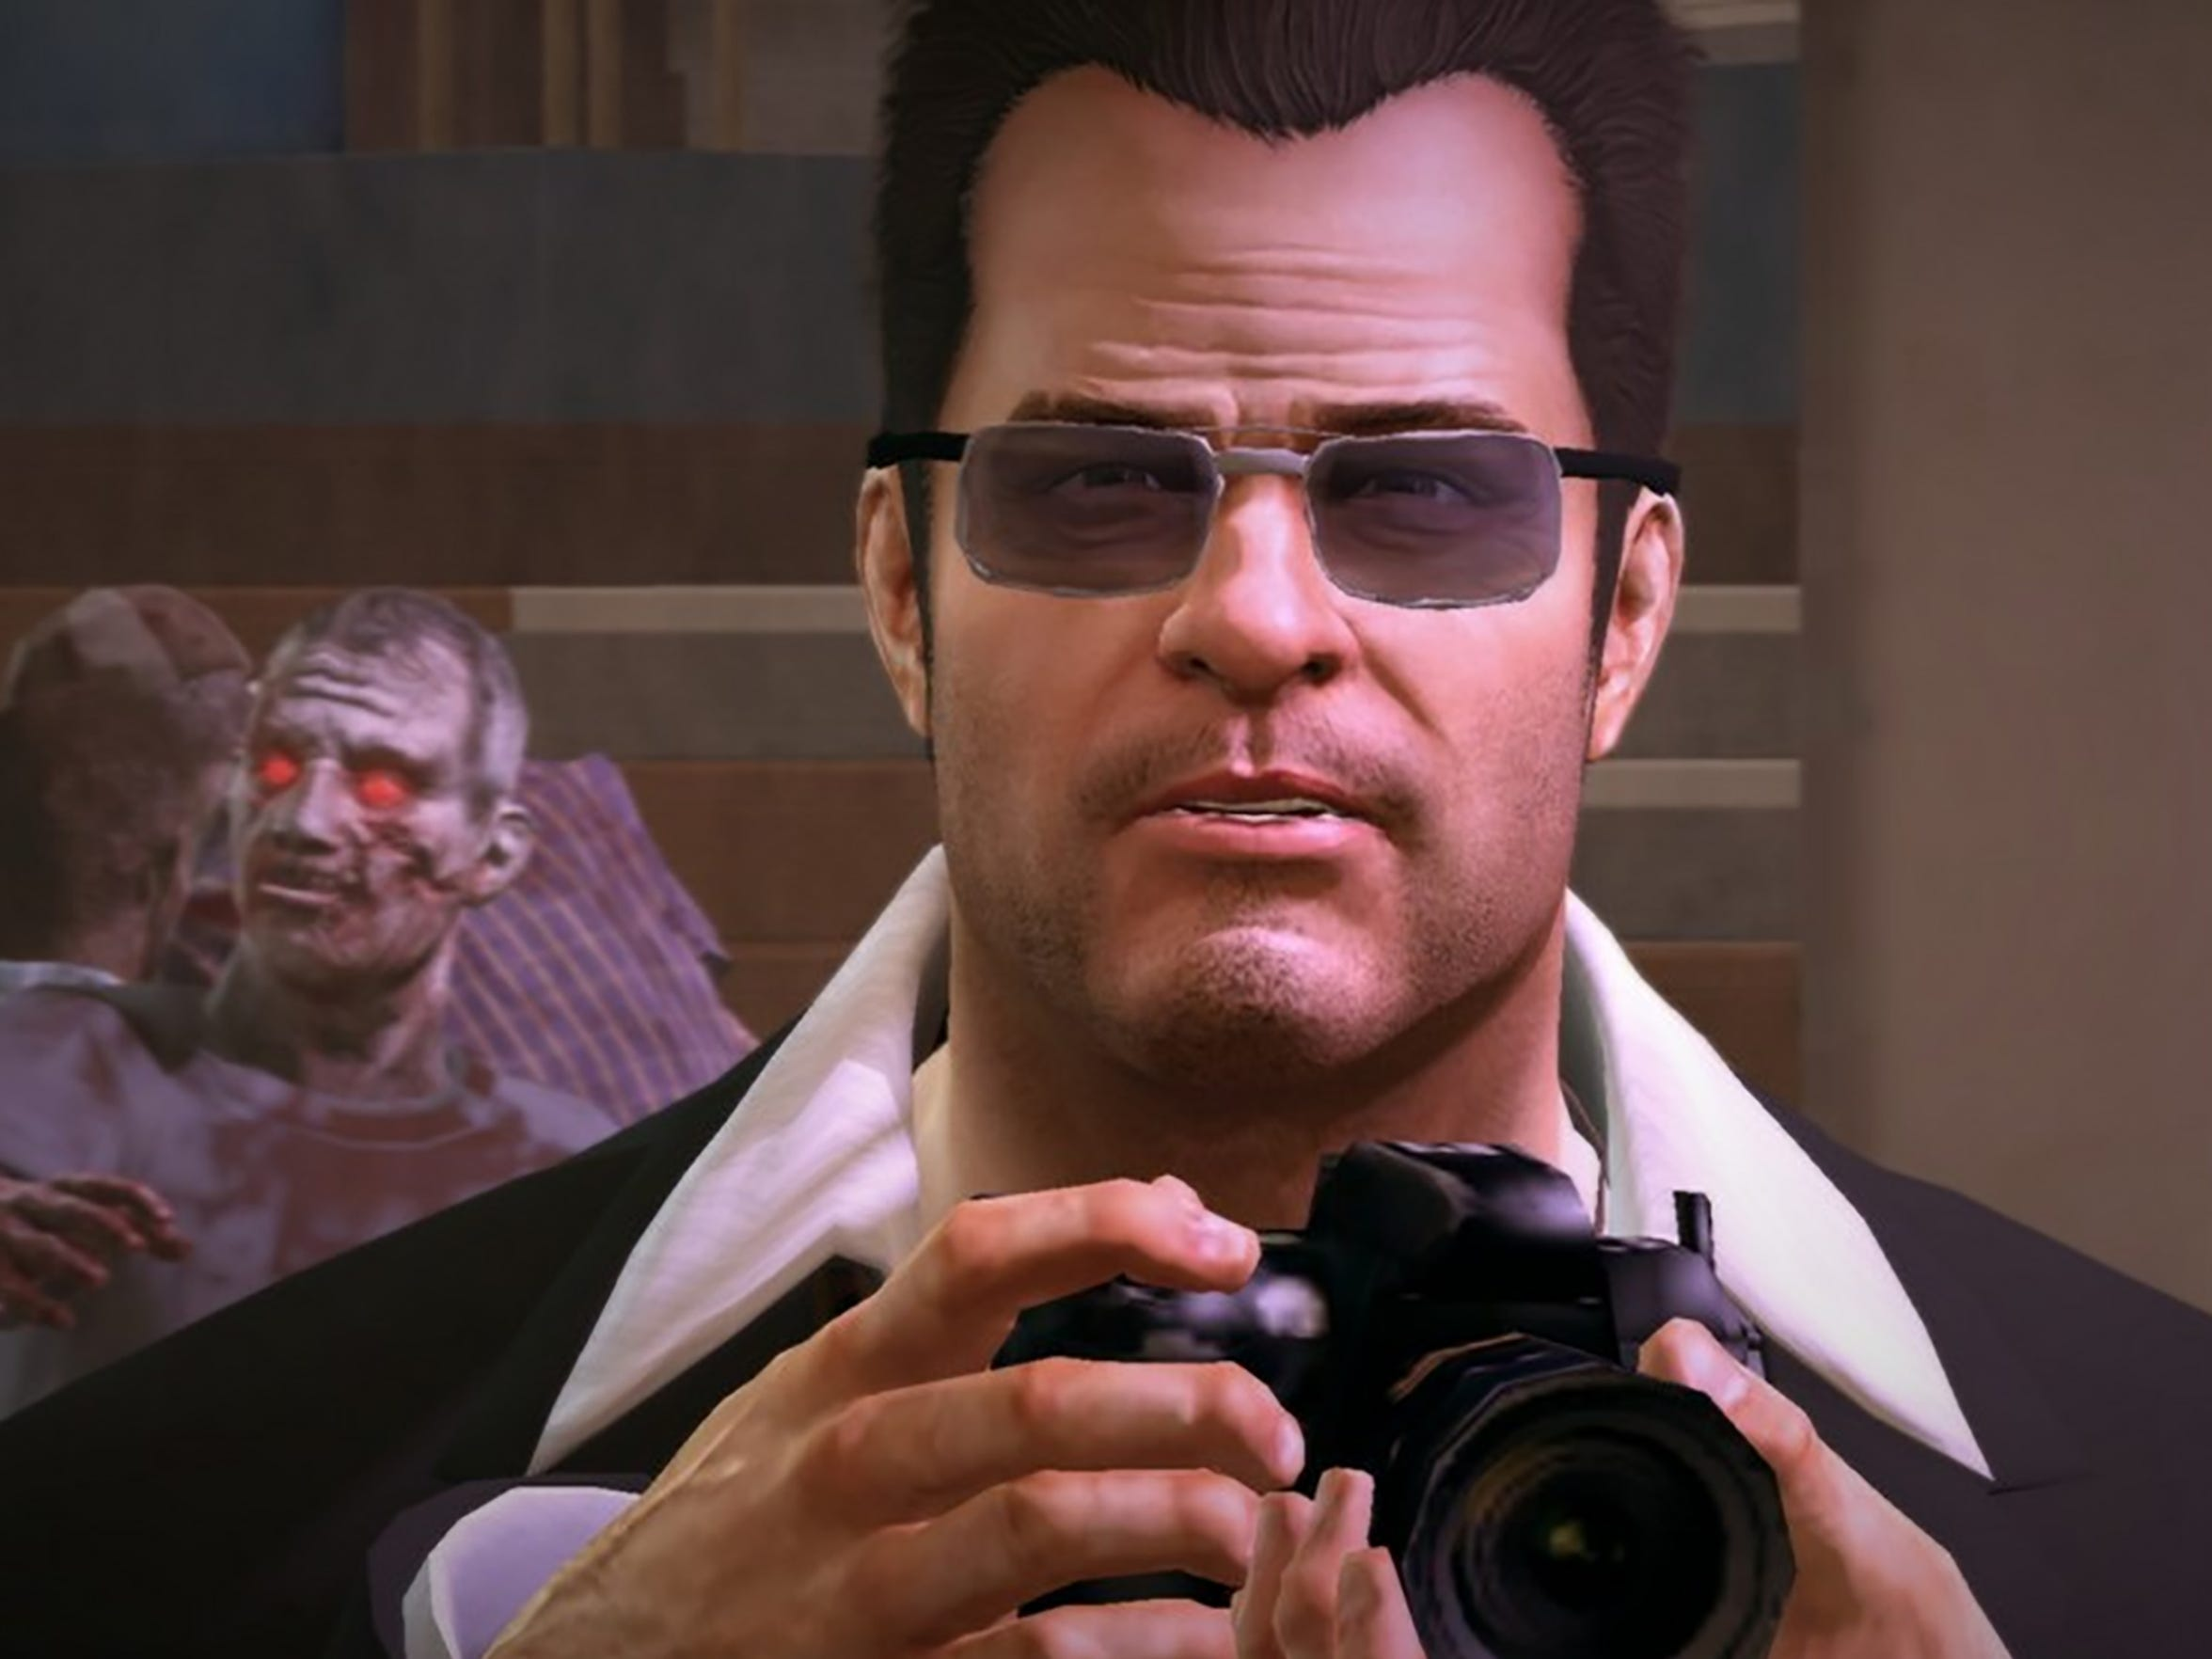 Nobody photobombs Frank West, not even zombies.